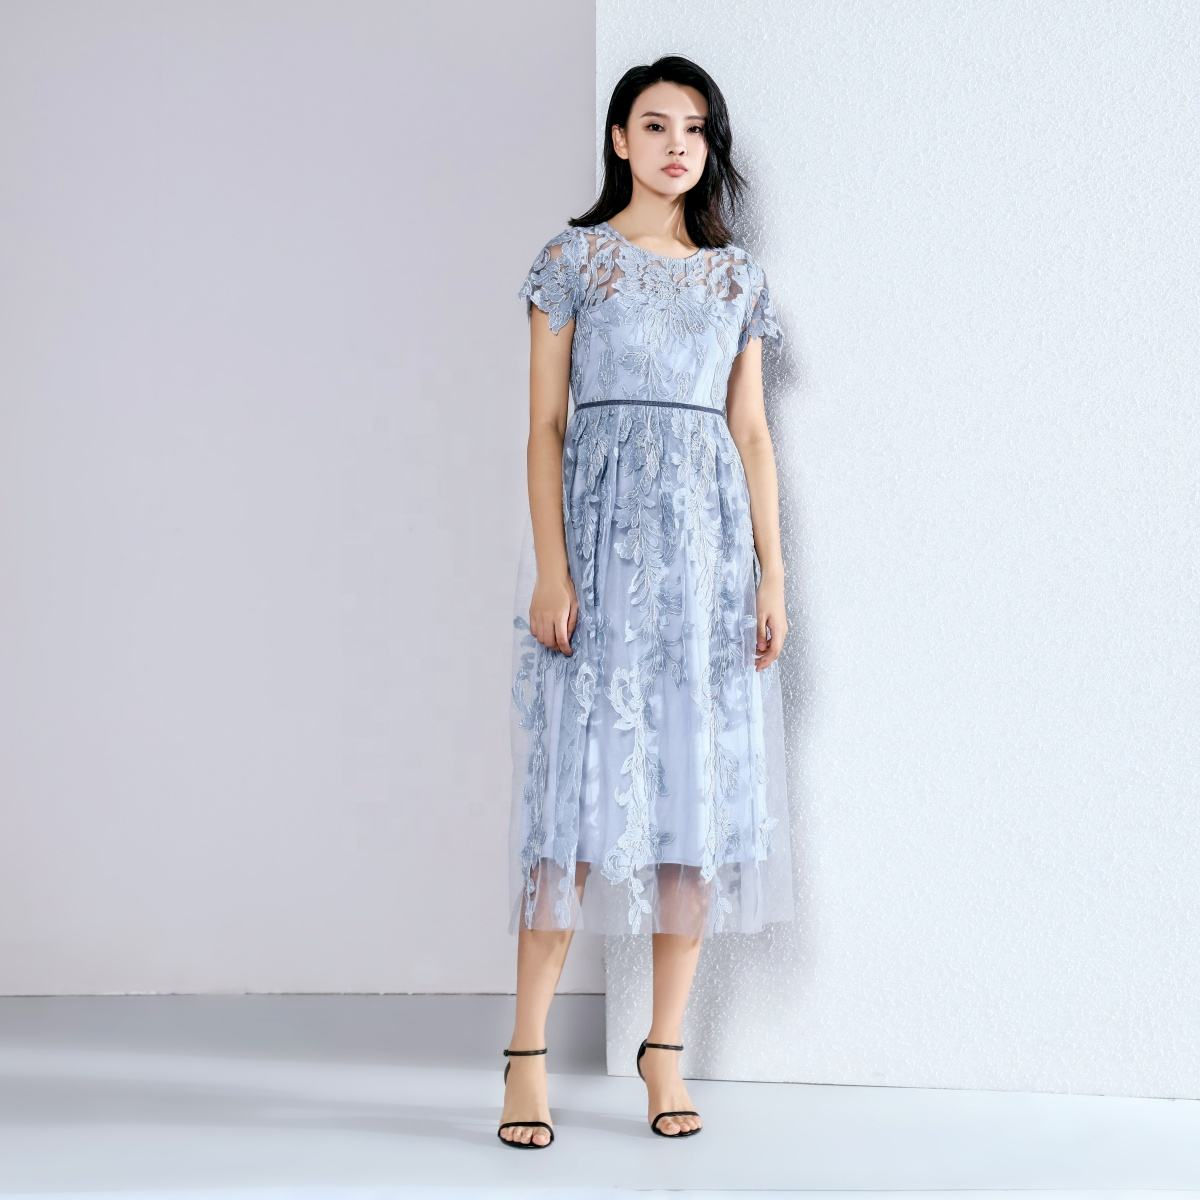 2020 new arriva emboridered floral mesh with velvet tape at waist midi dress women summer dress